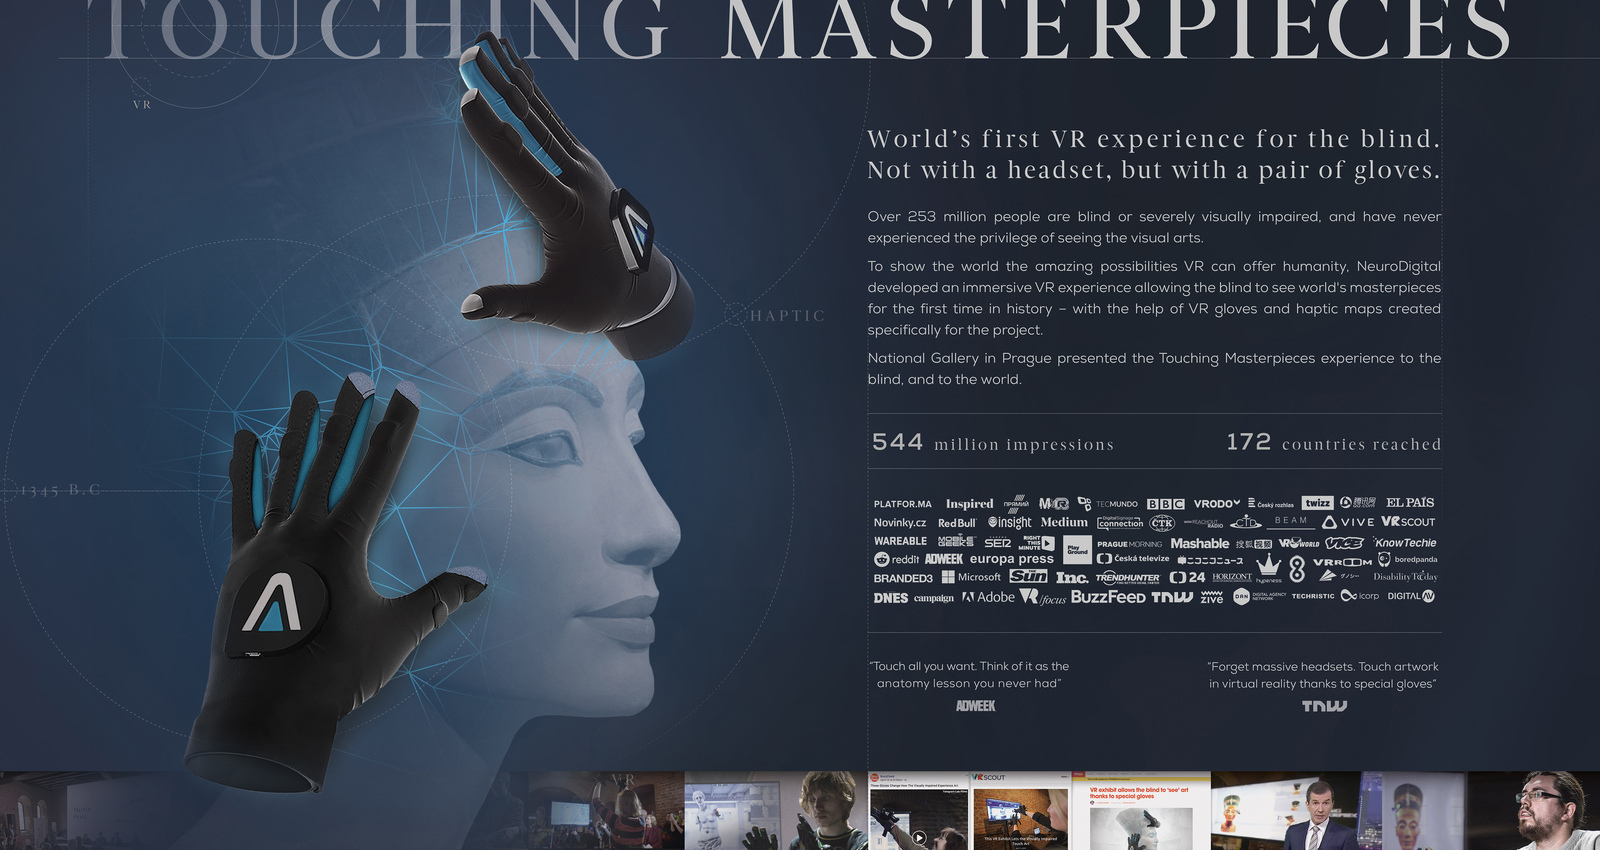 Touching Masterpieces